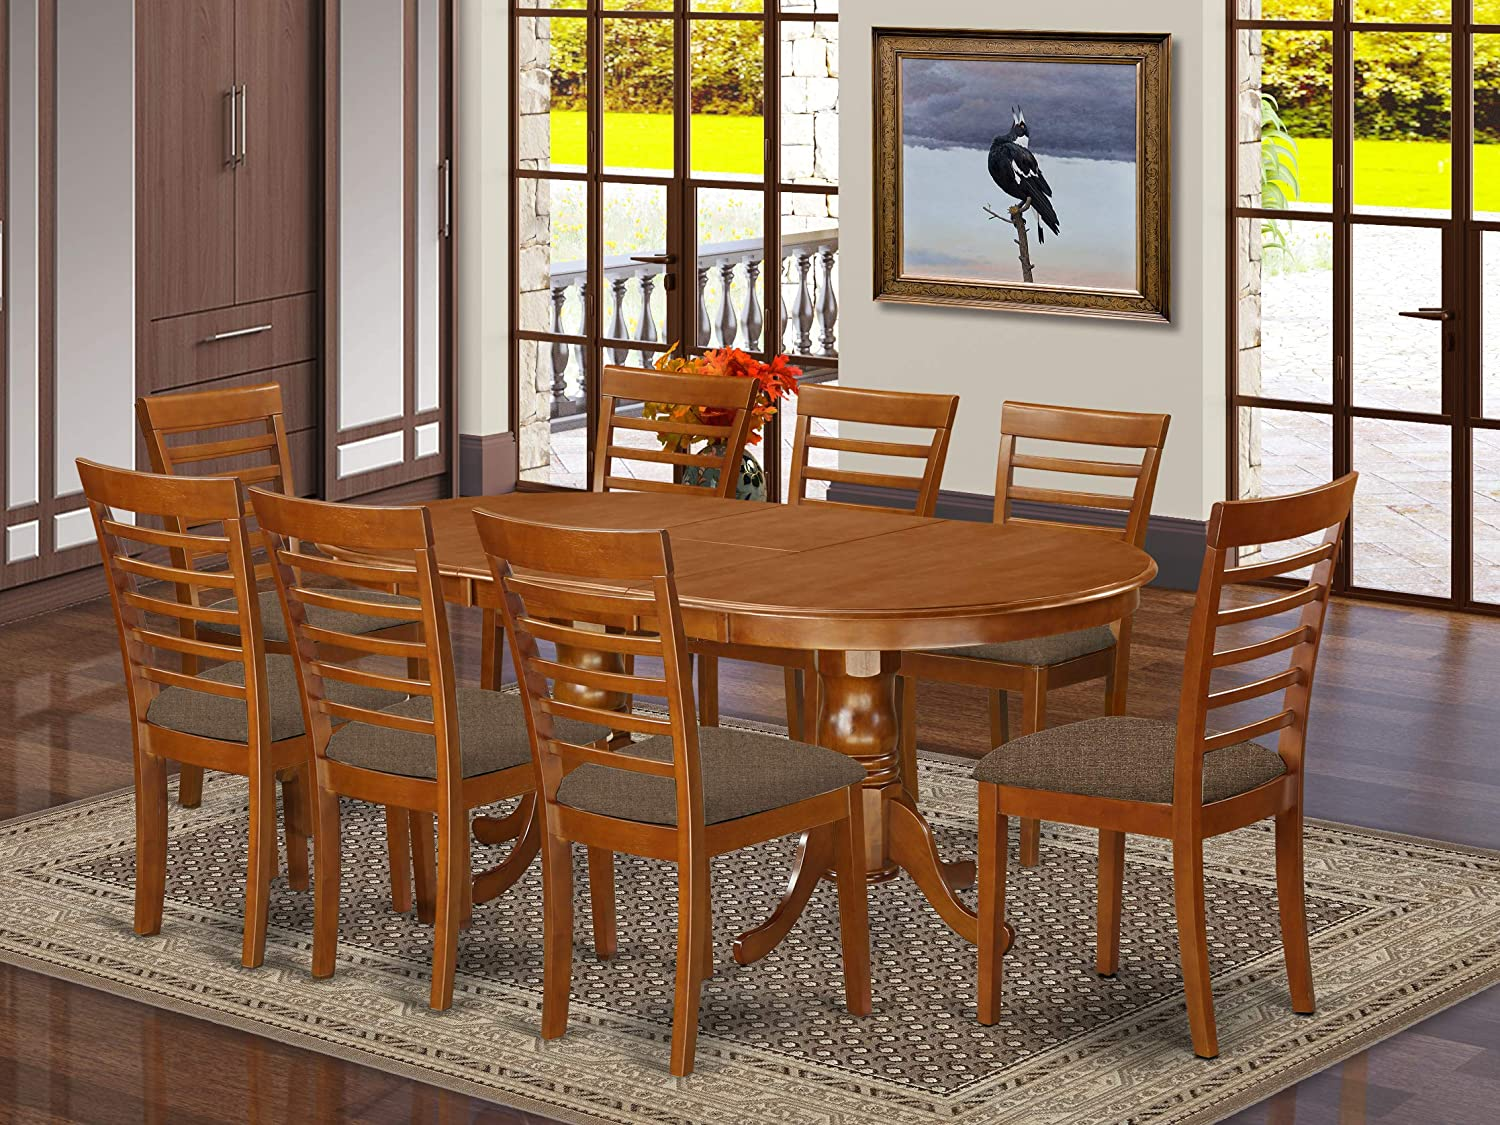 9 Pc Dining room set-Dining Table plus 8 Dining Chairs